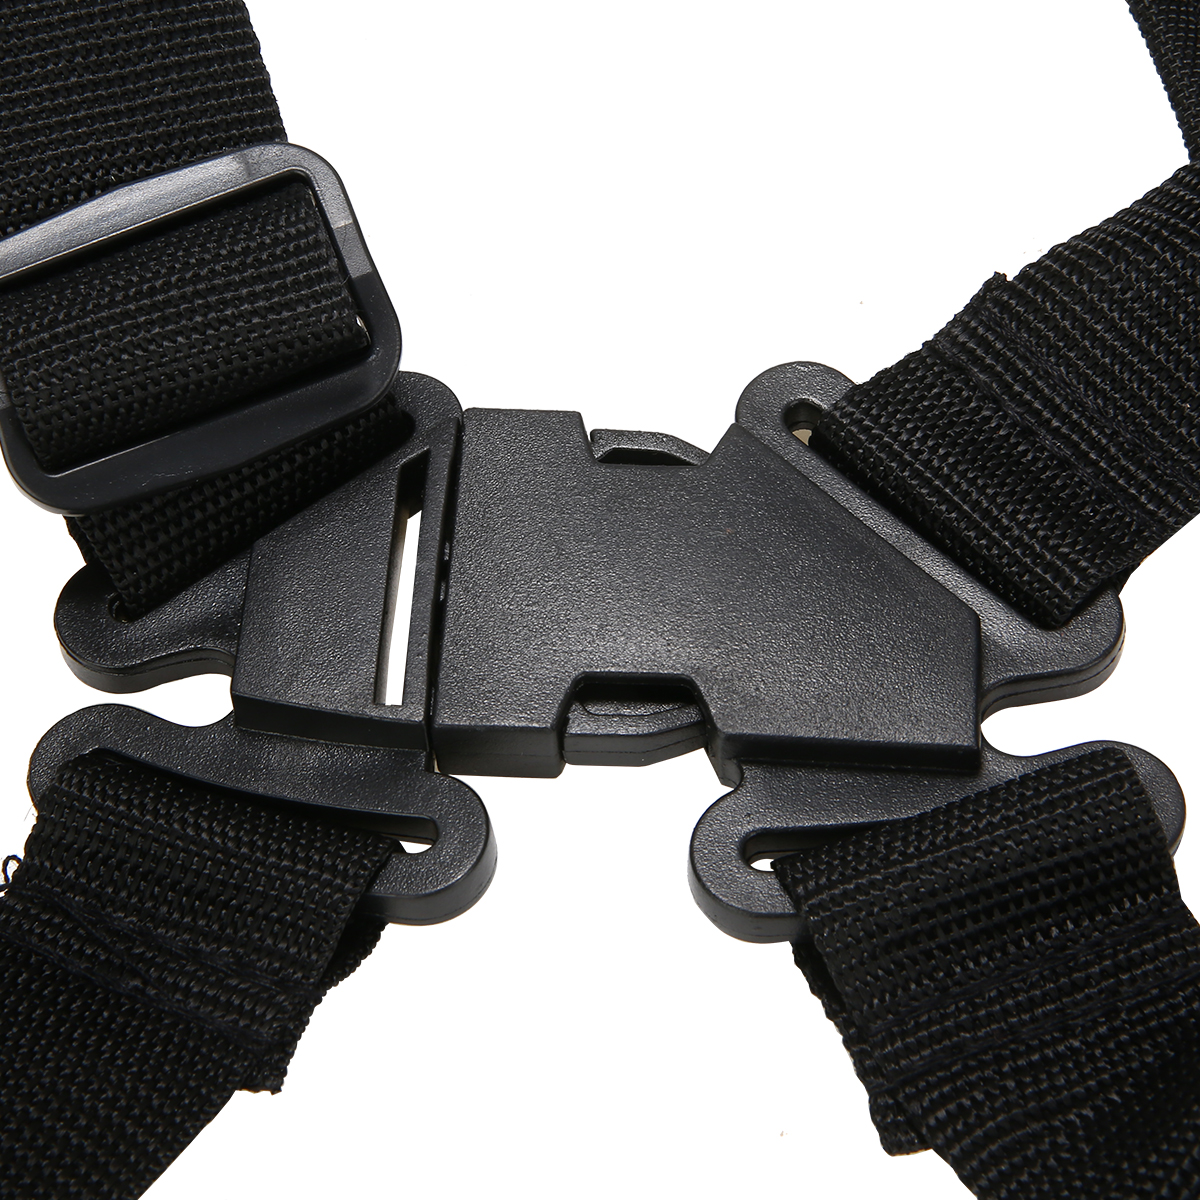 Mayitr Adjustable Padded Trimmer Shoulder Harness Strap Protection Panel Garden Brush Cutter Strimmer Garden Tools Accessories